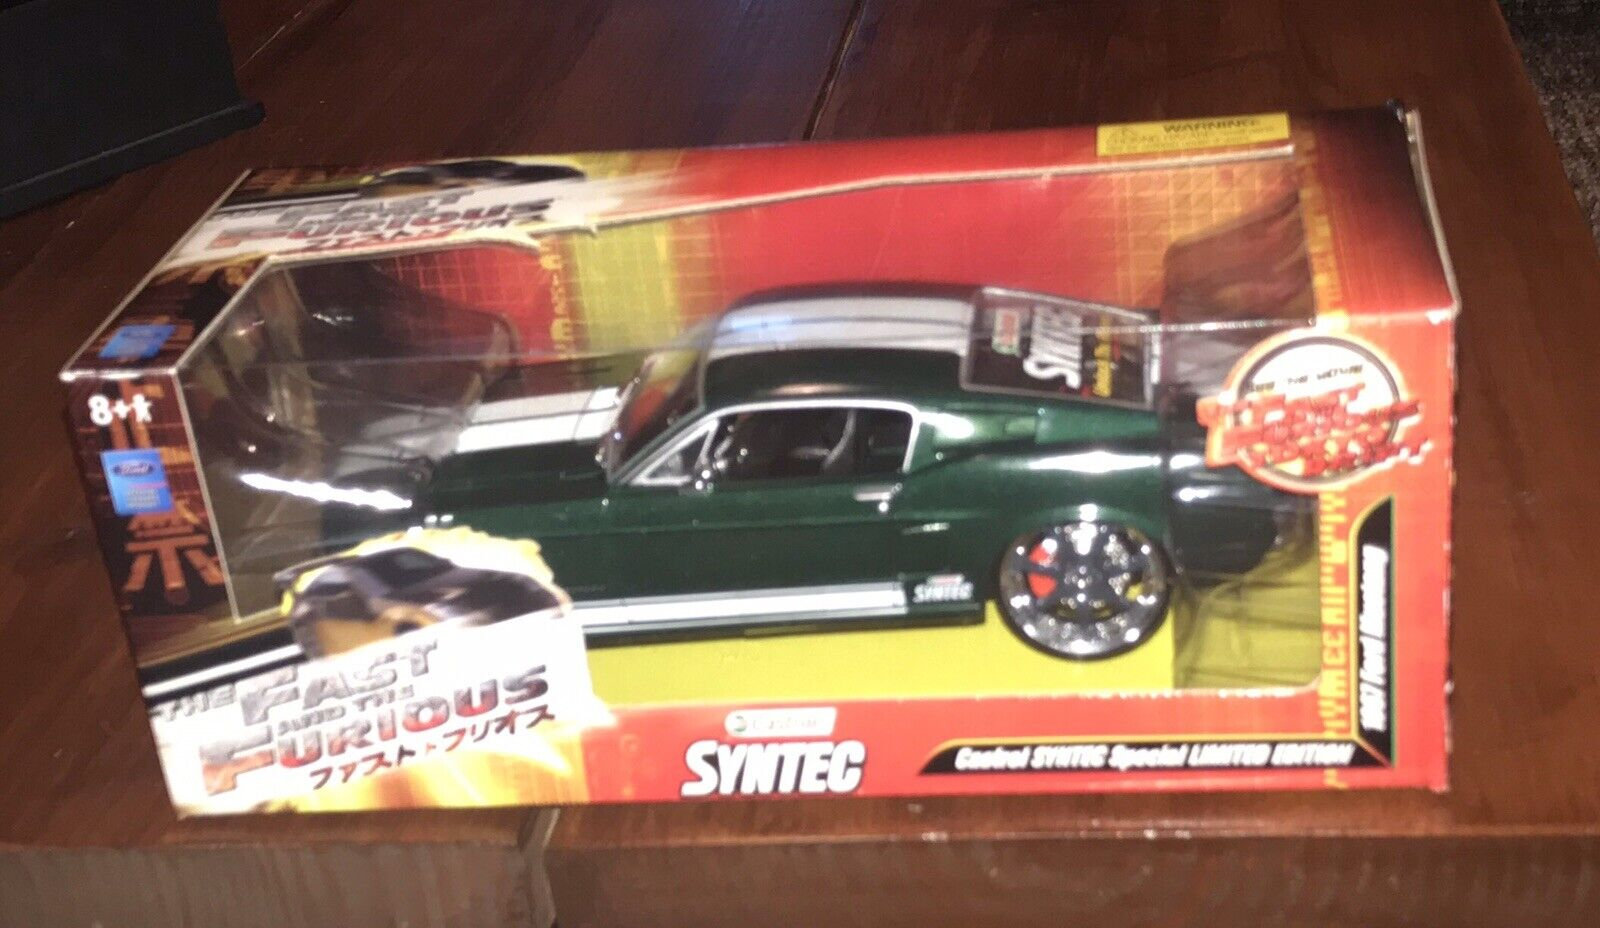 the fast and the furious 2 fast 2 furious the fast and the furious tokyo drift for sale online ebay the fast and the furious tokyo drift 1967 mustang die cast car 1 18